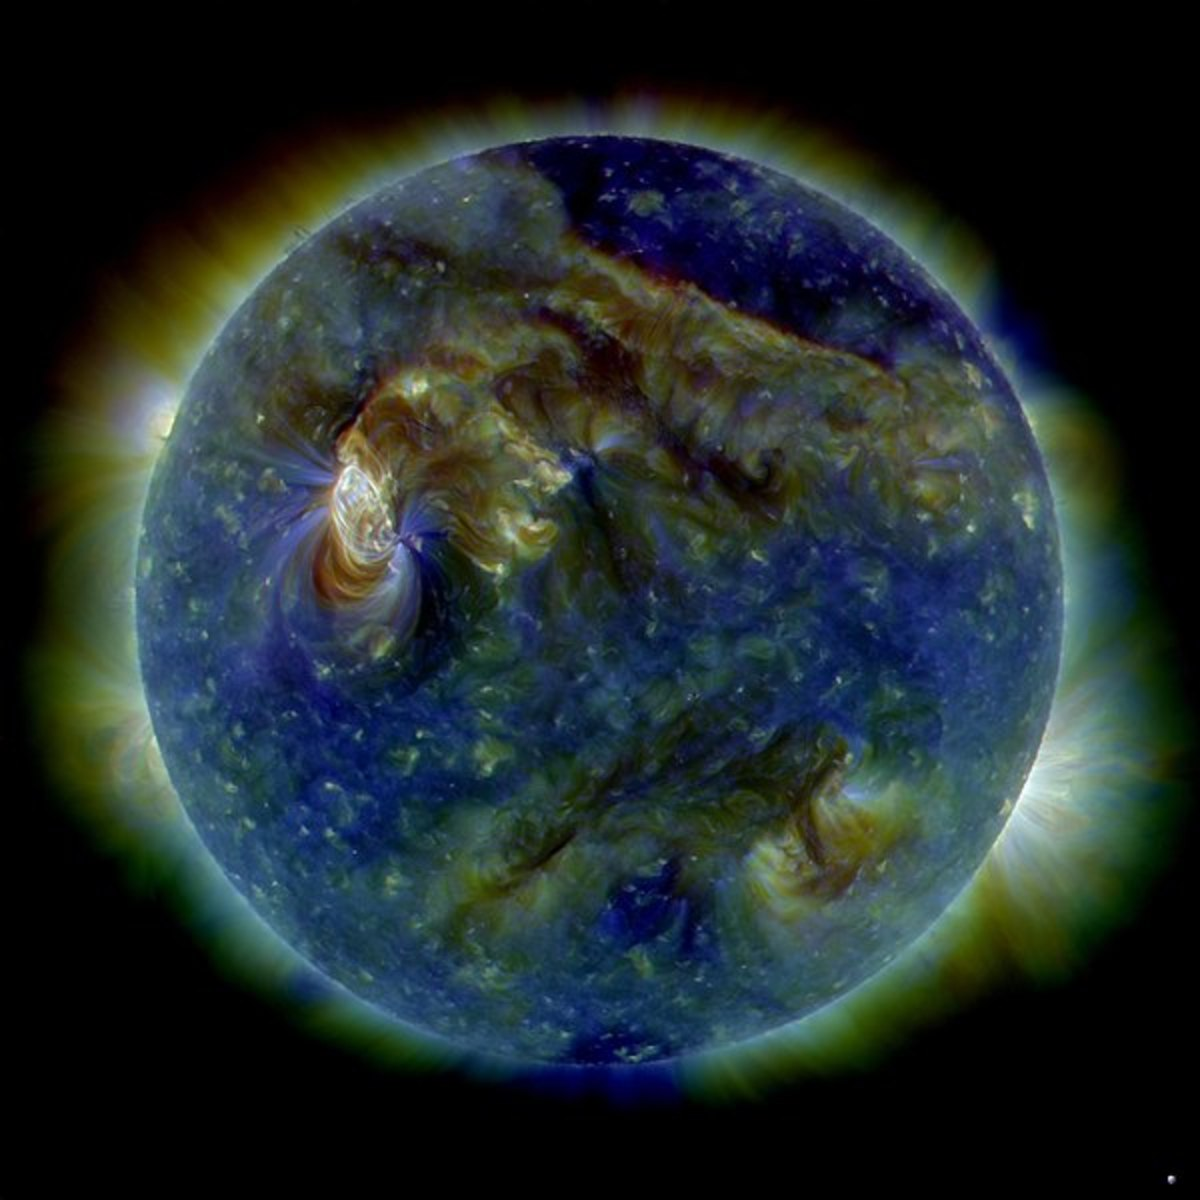 This image is a computer composite showing the effects of a solar eruption on the earth's magnetic field